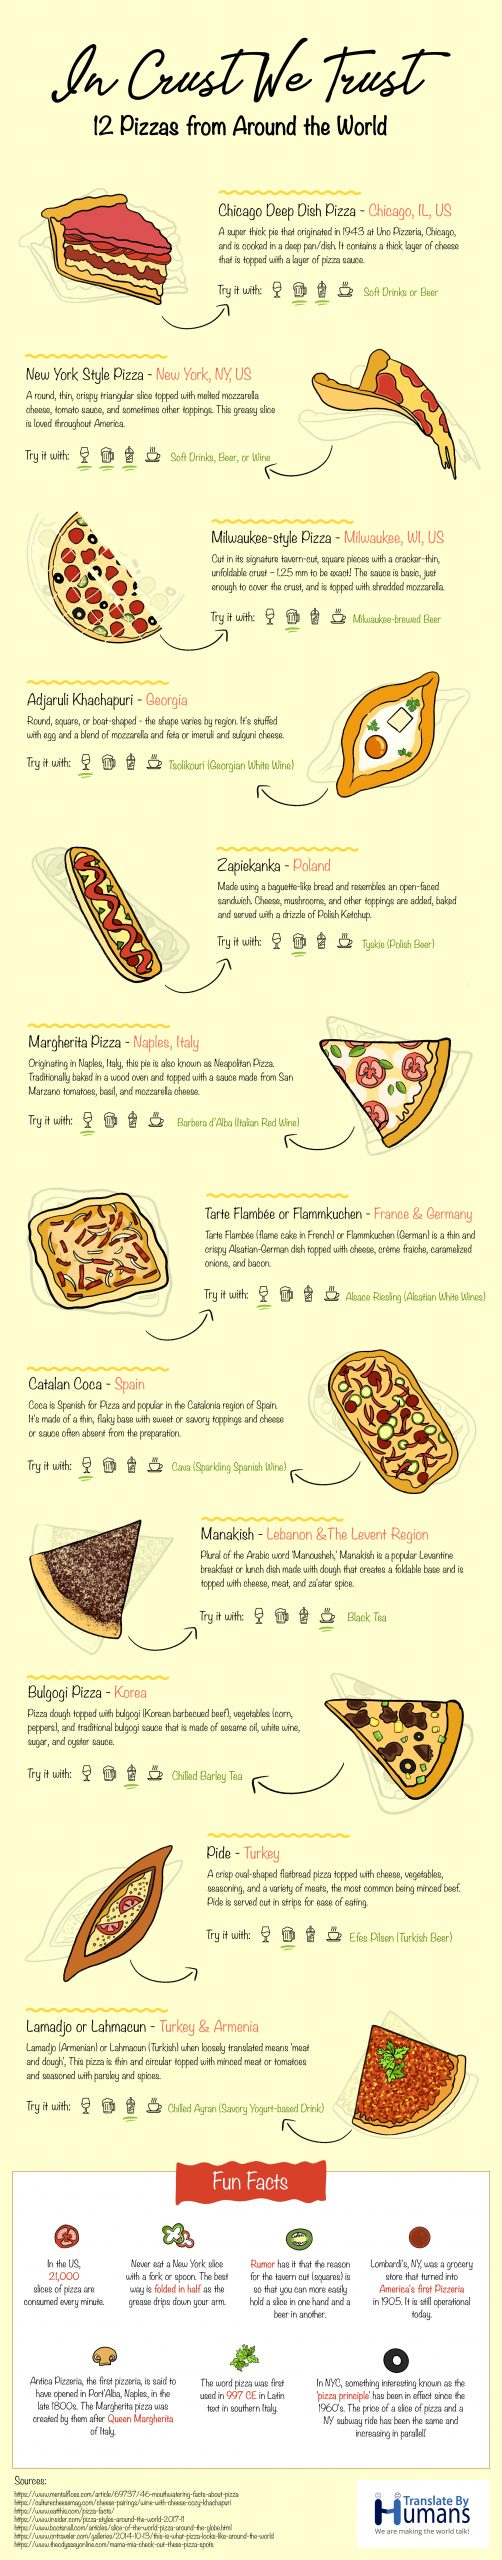 Pizza from around the world infographic